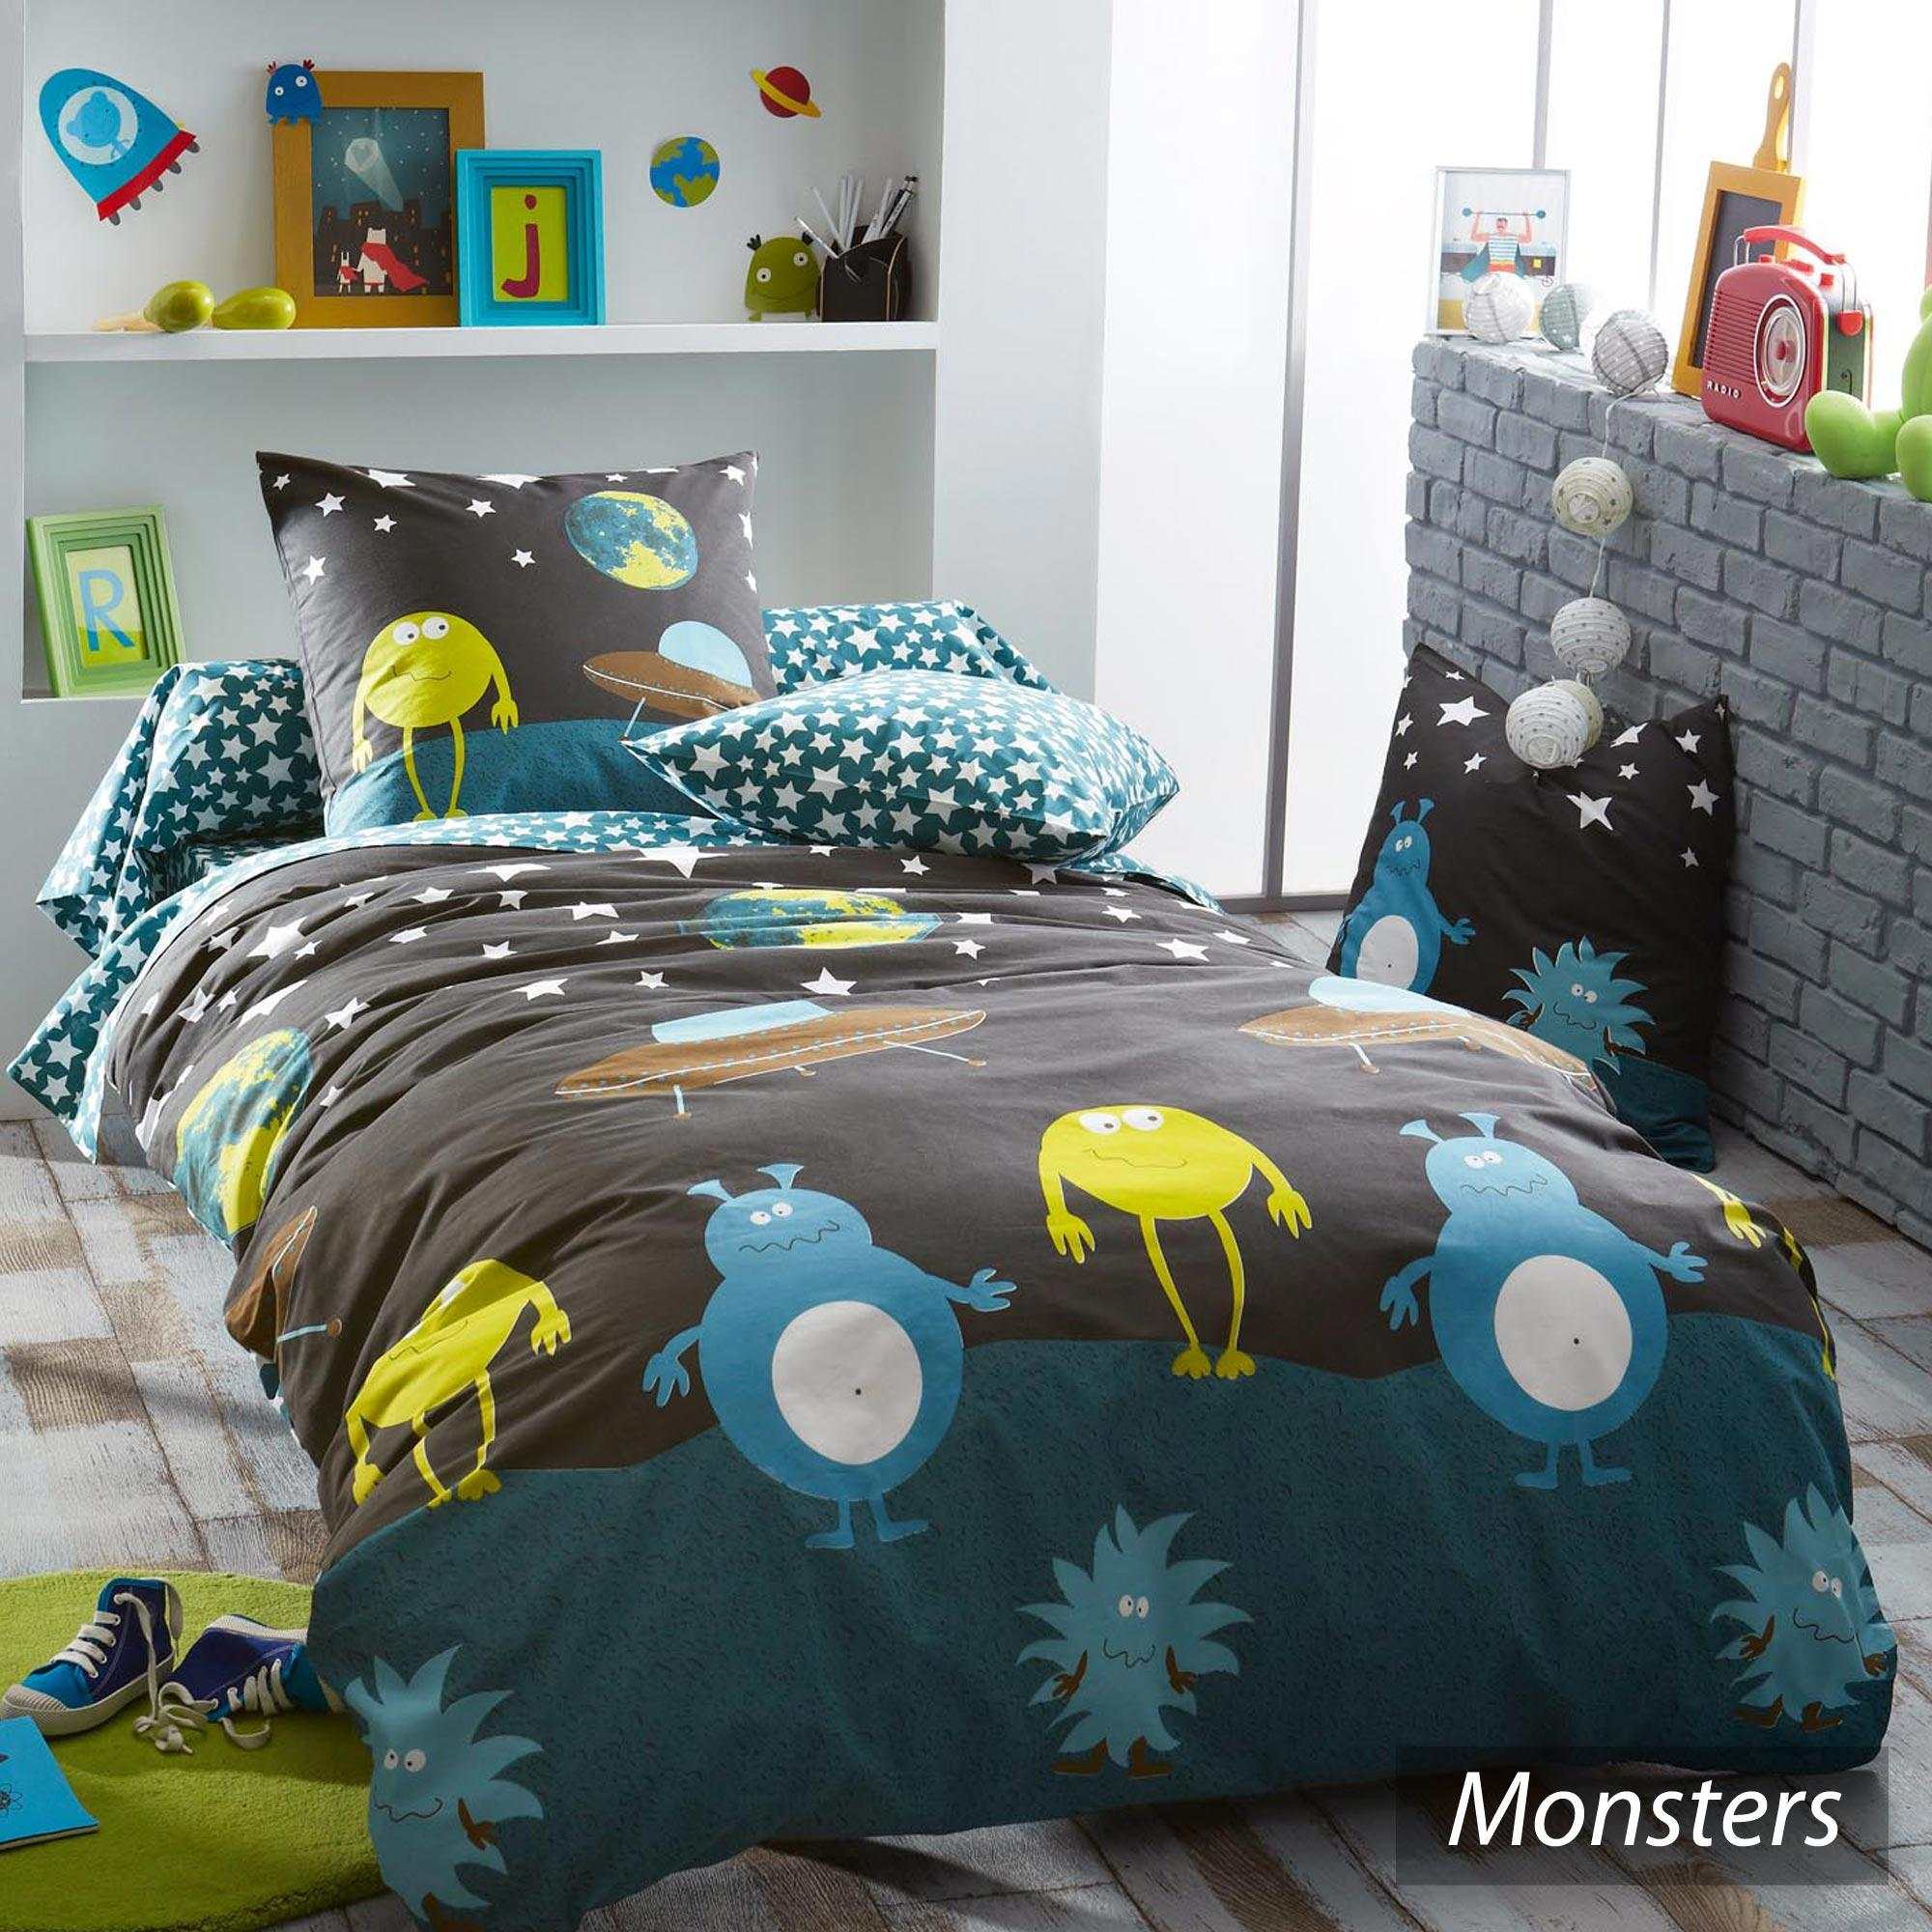 parure de lit 200x200 cm monsters linnea vente de linge de maison. Black Bedroom Furniture Sets. Home Design Ideas